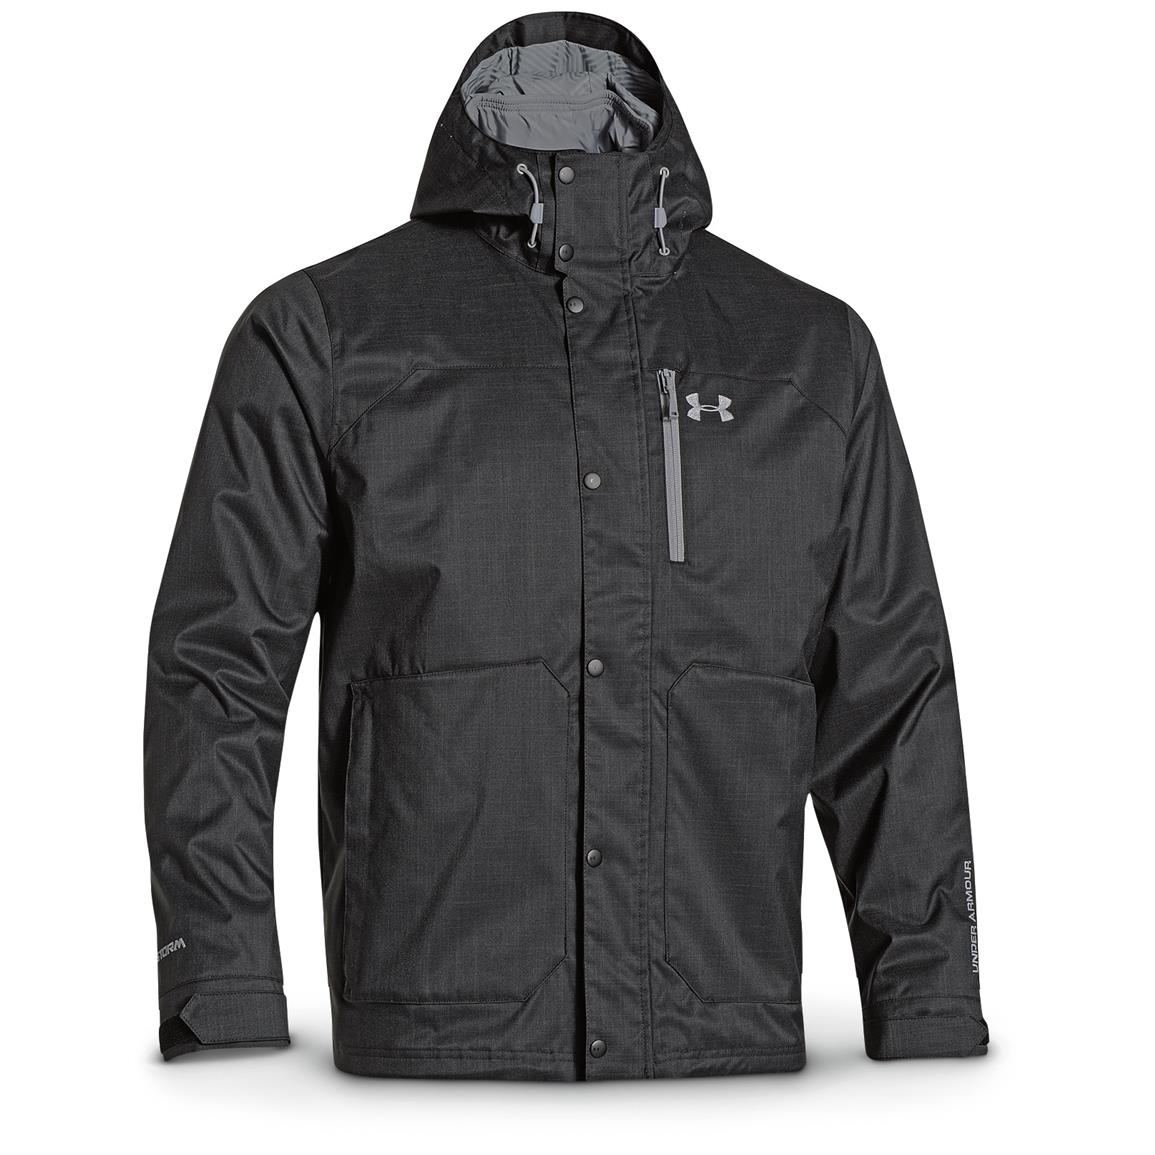 Under Armour Men's ColdGear Infrared Porter 3-in-1 Jacket, Black / Steel